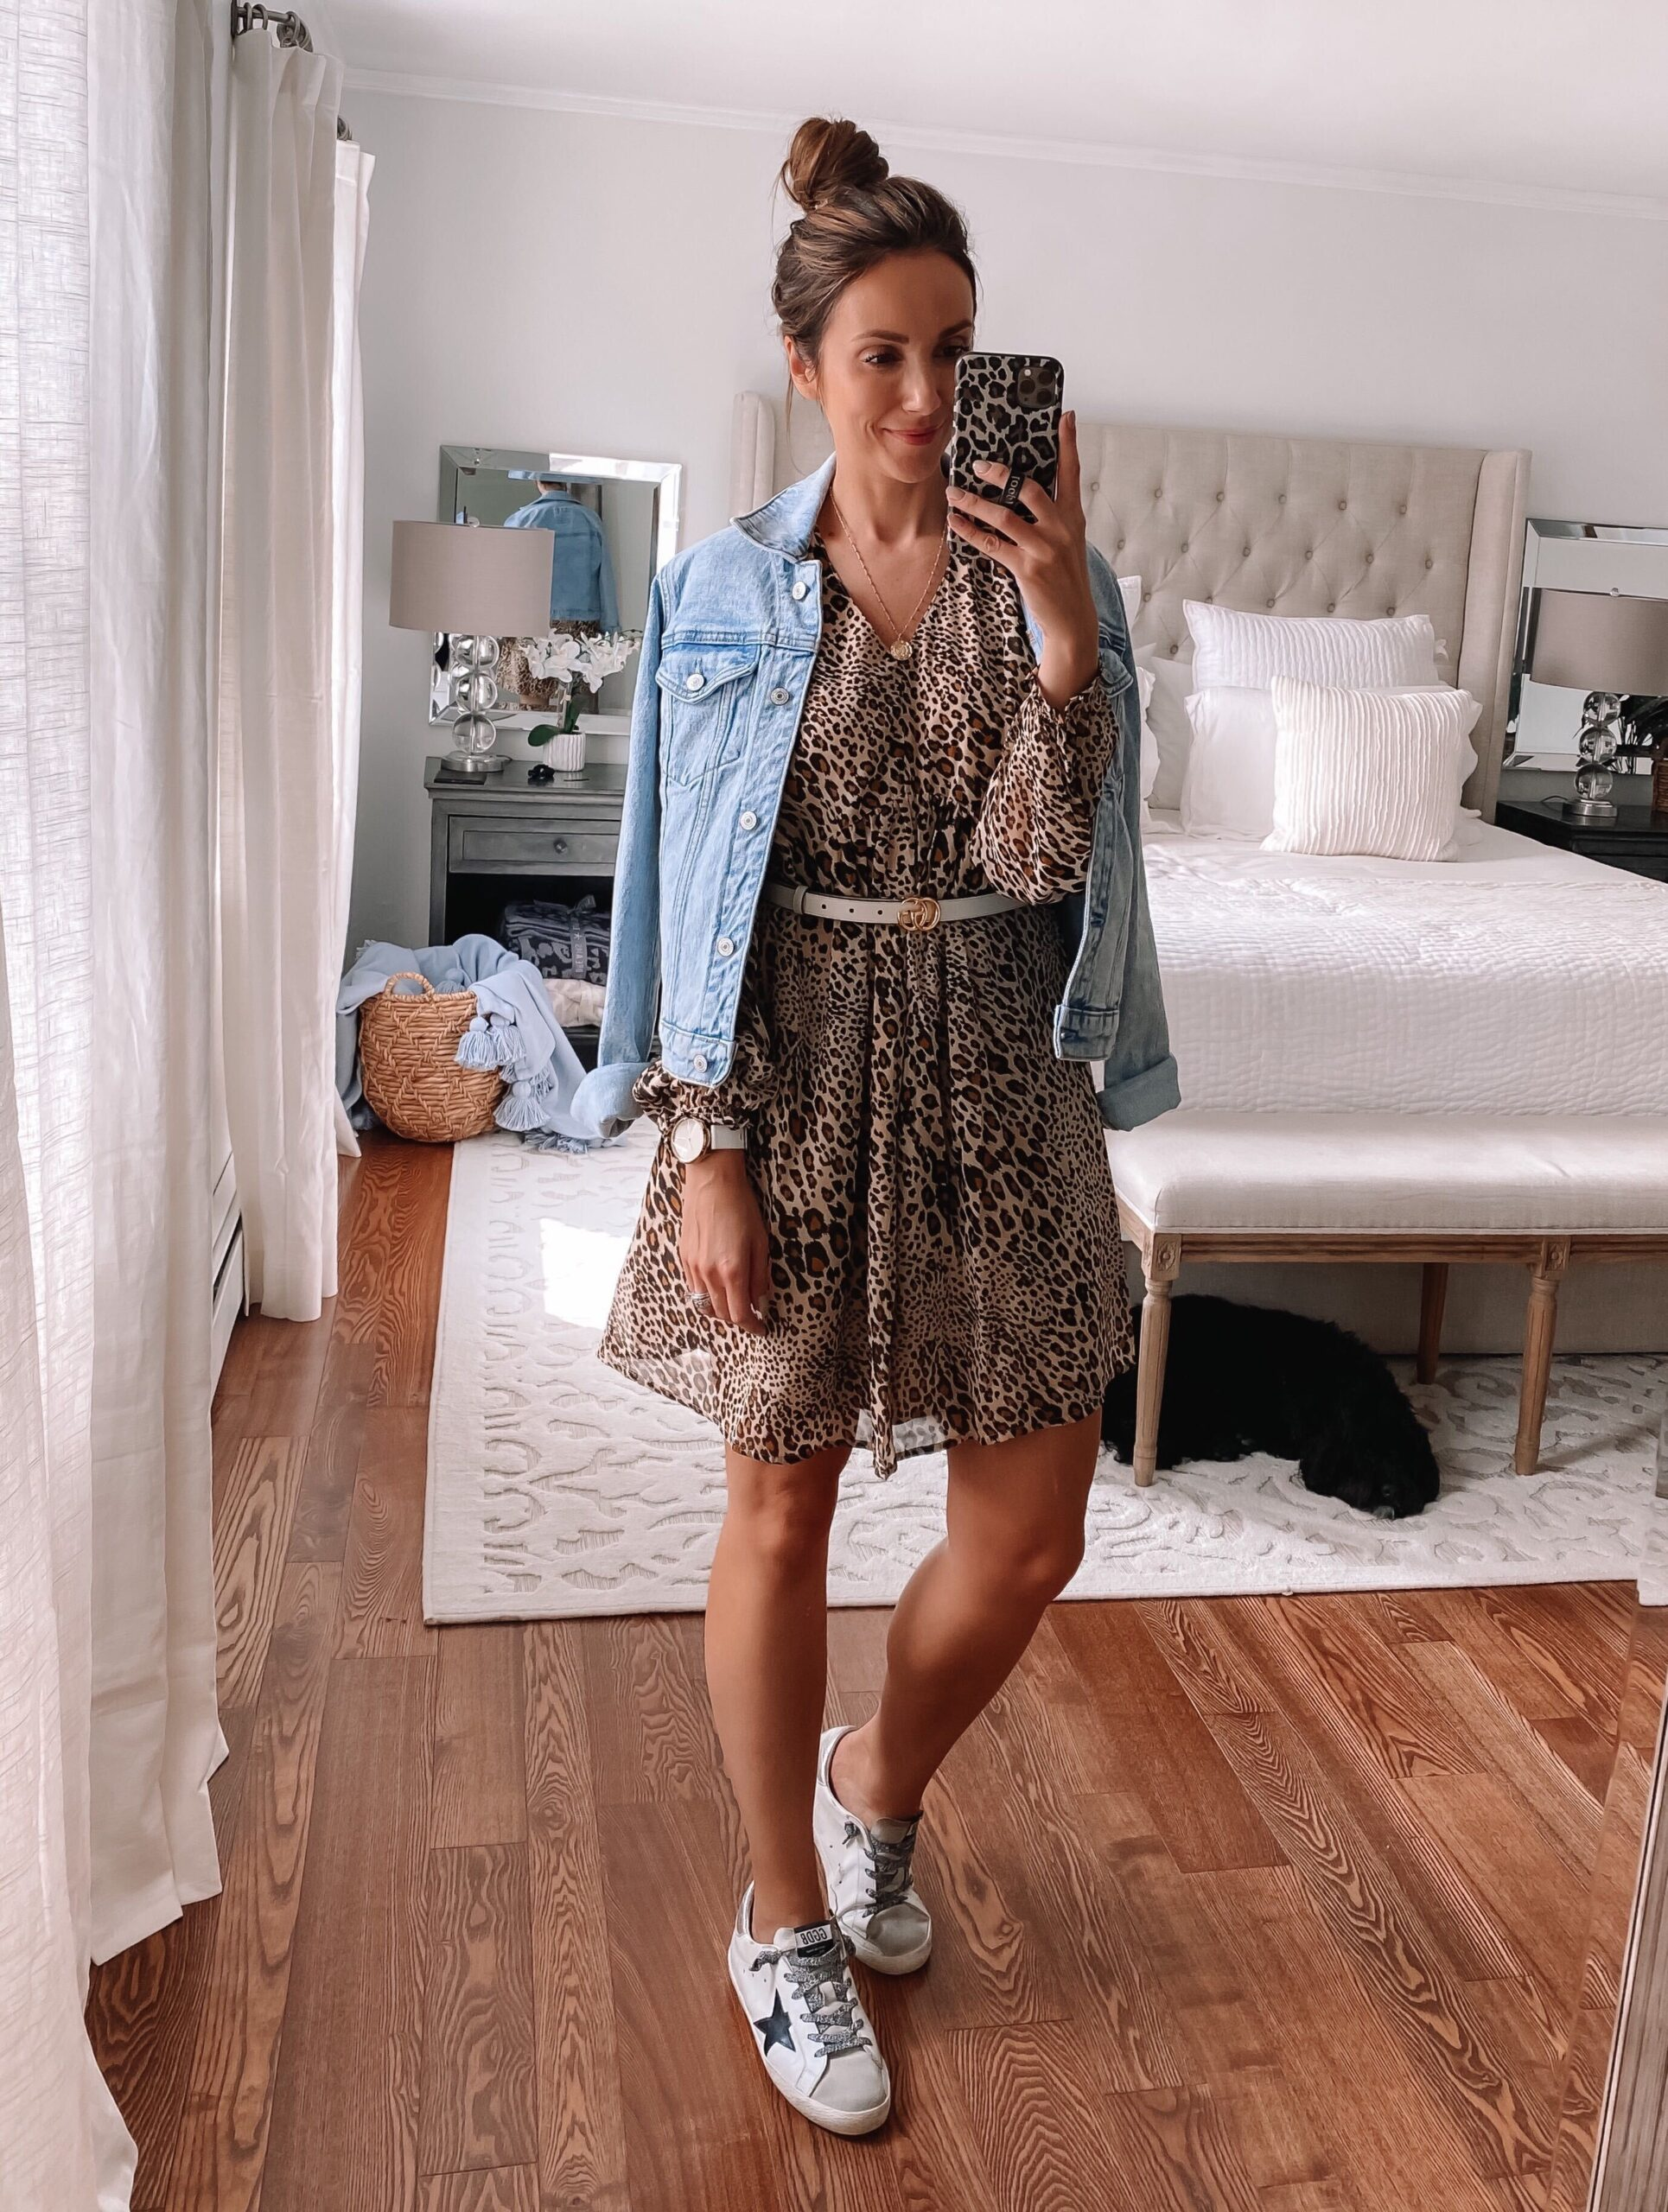 leopard dress styled athleisure, fall outfit idea